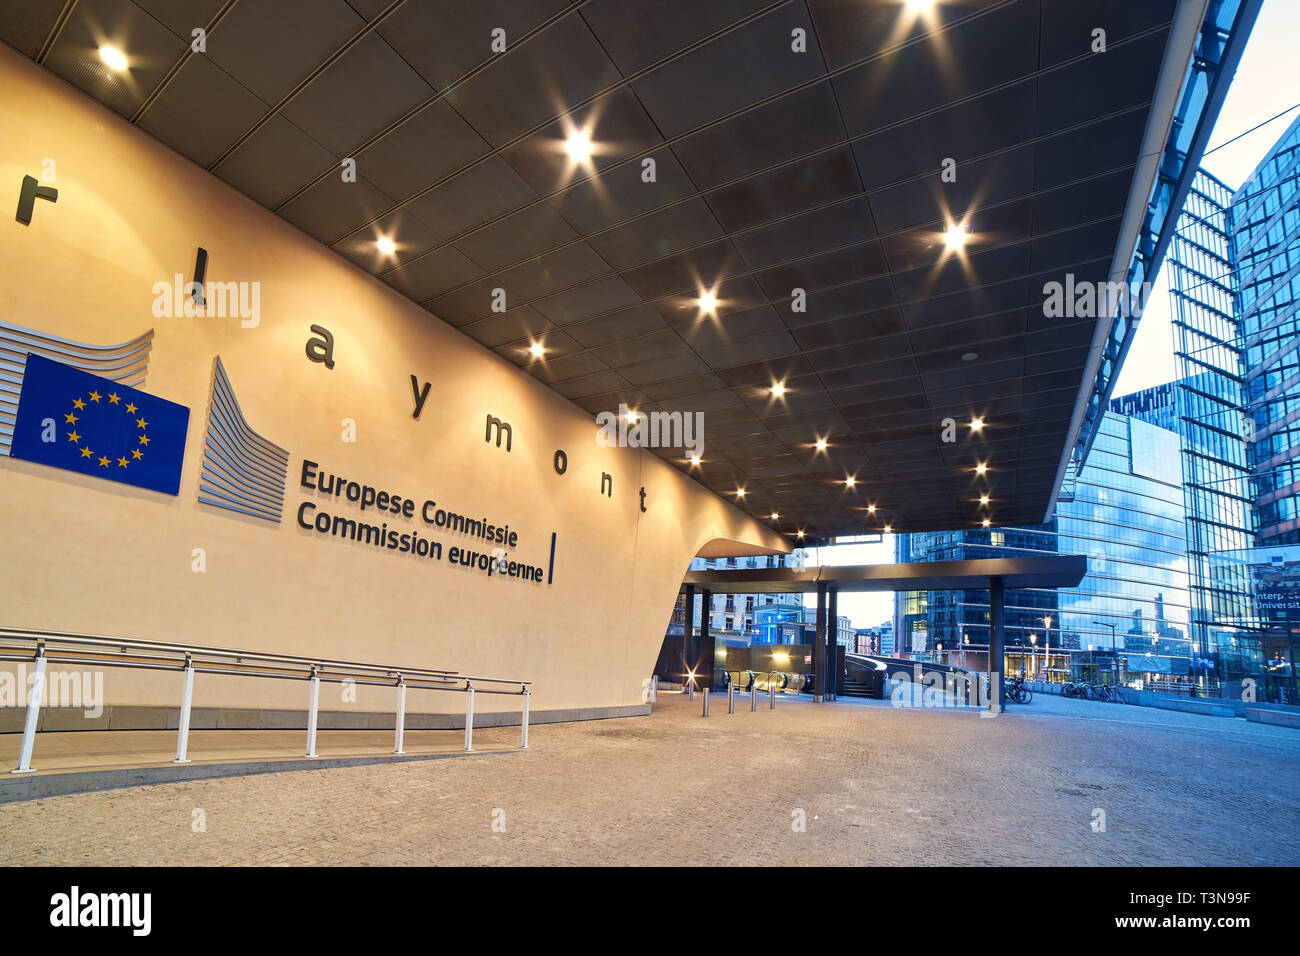 Entrance of the Berlaymont building, headquarters of the European Commission with the organization logo. - Stock Image